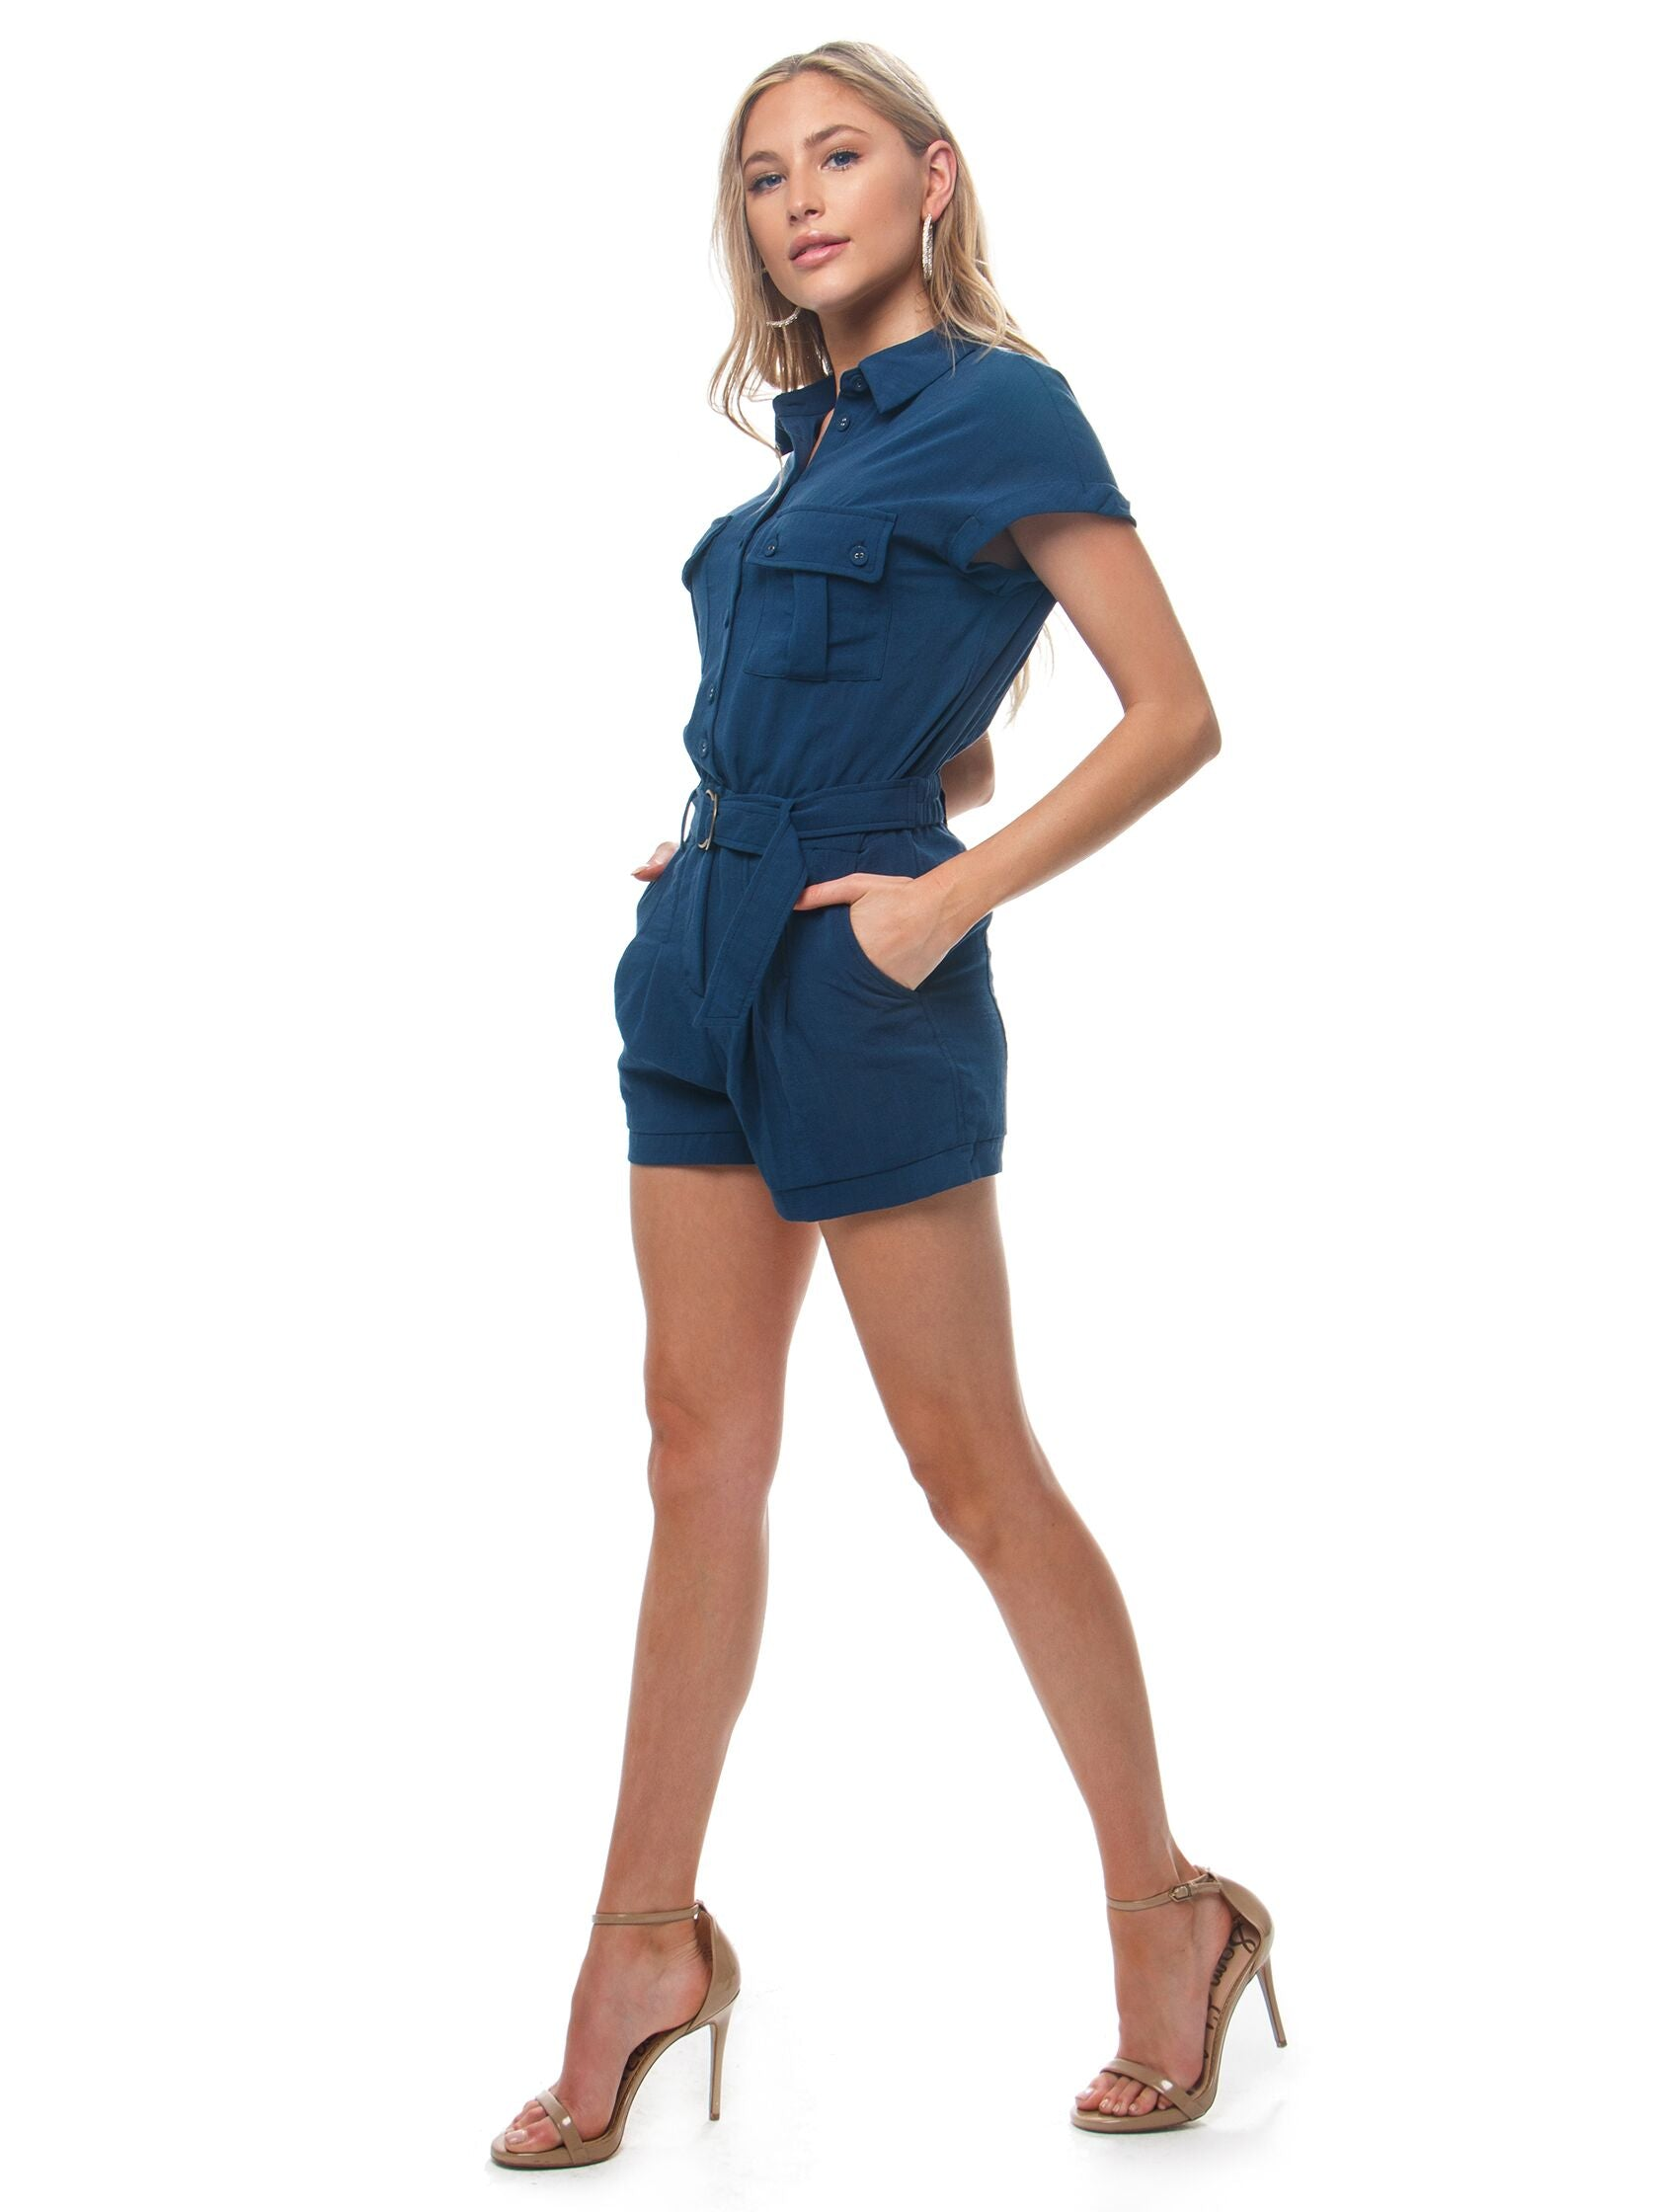 Woman wearing a romper rental from Heartloom called Jude Romper